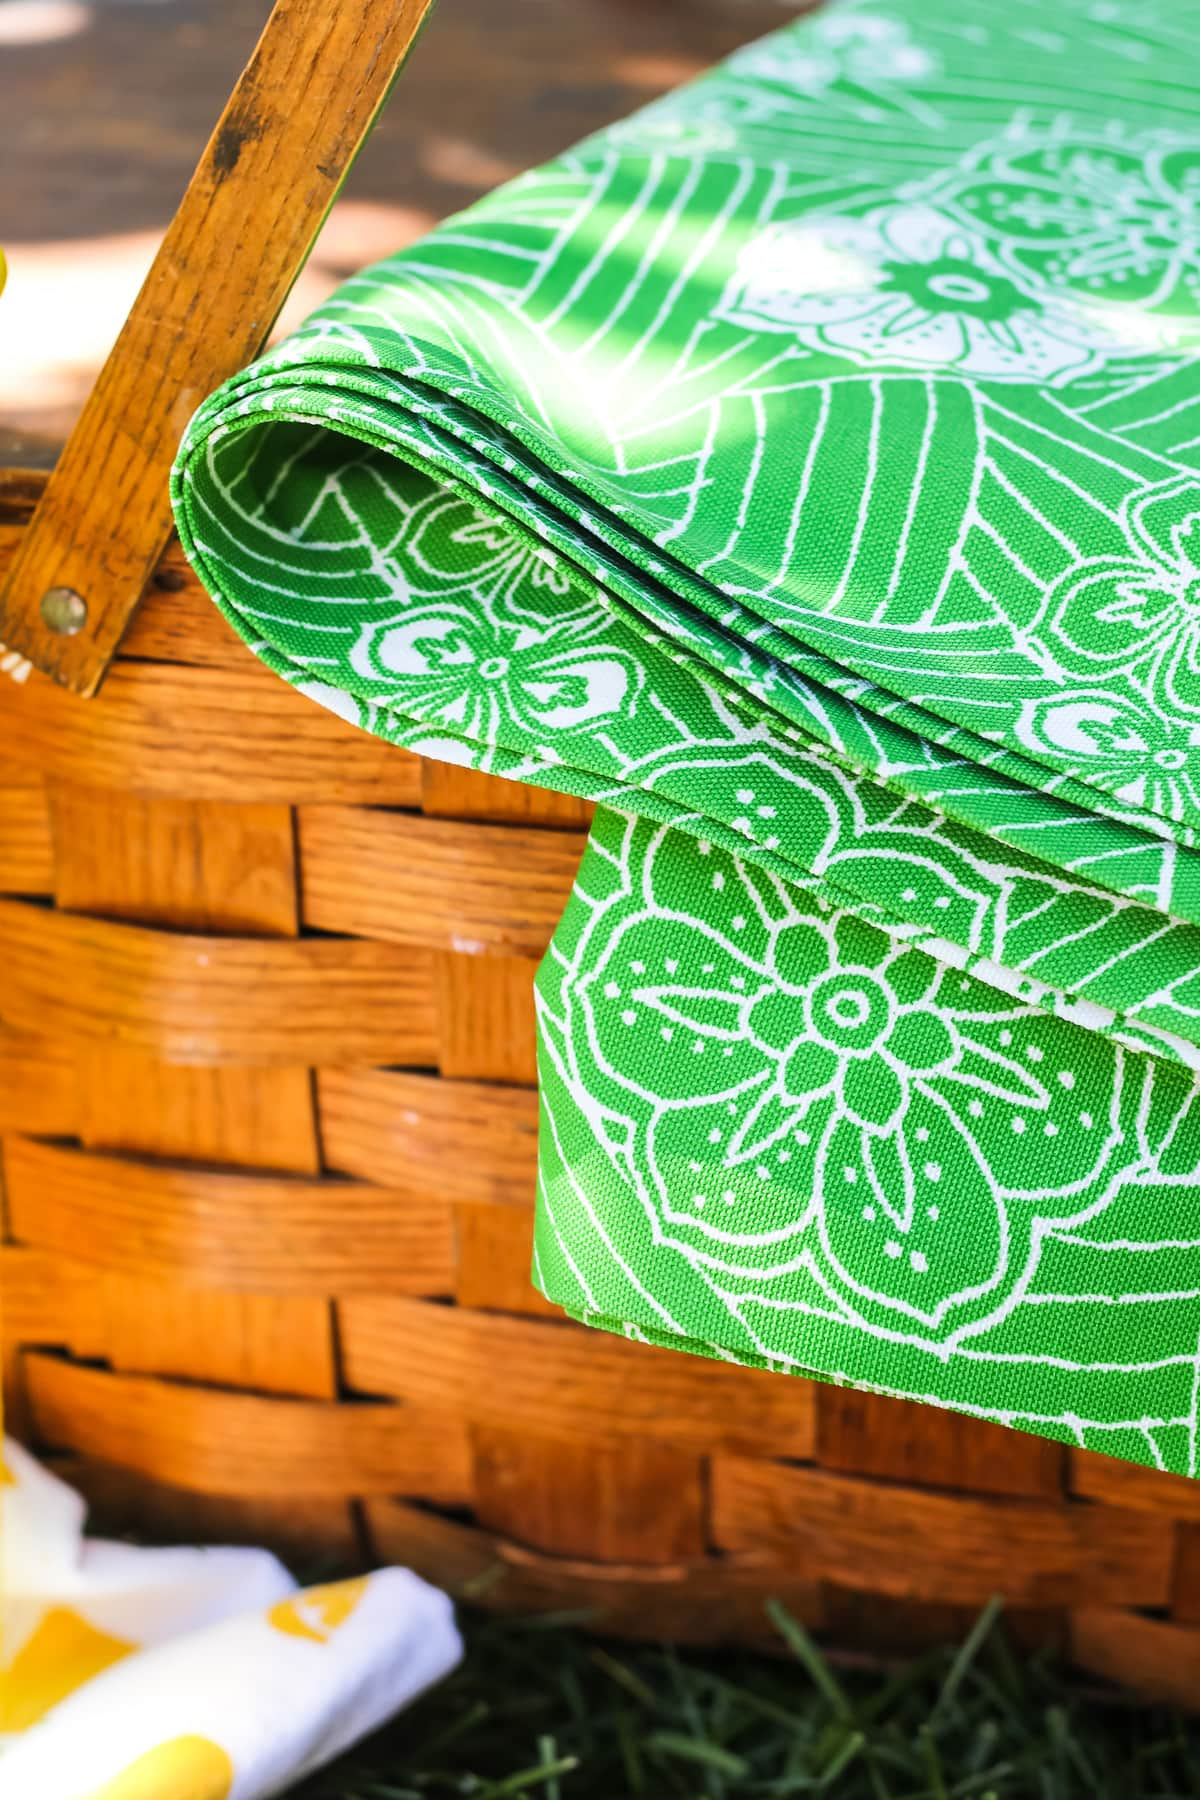 a brown wood picnic basket sitting on green grass with a green and white picnic blanket draped over one side of it.